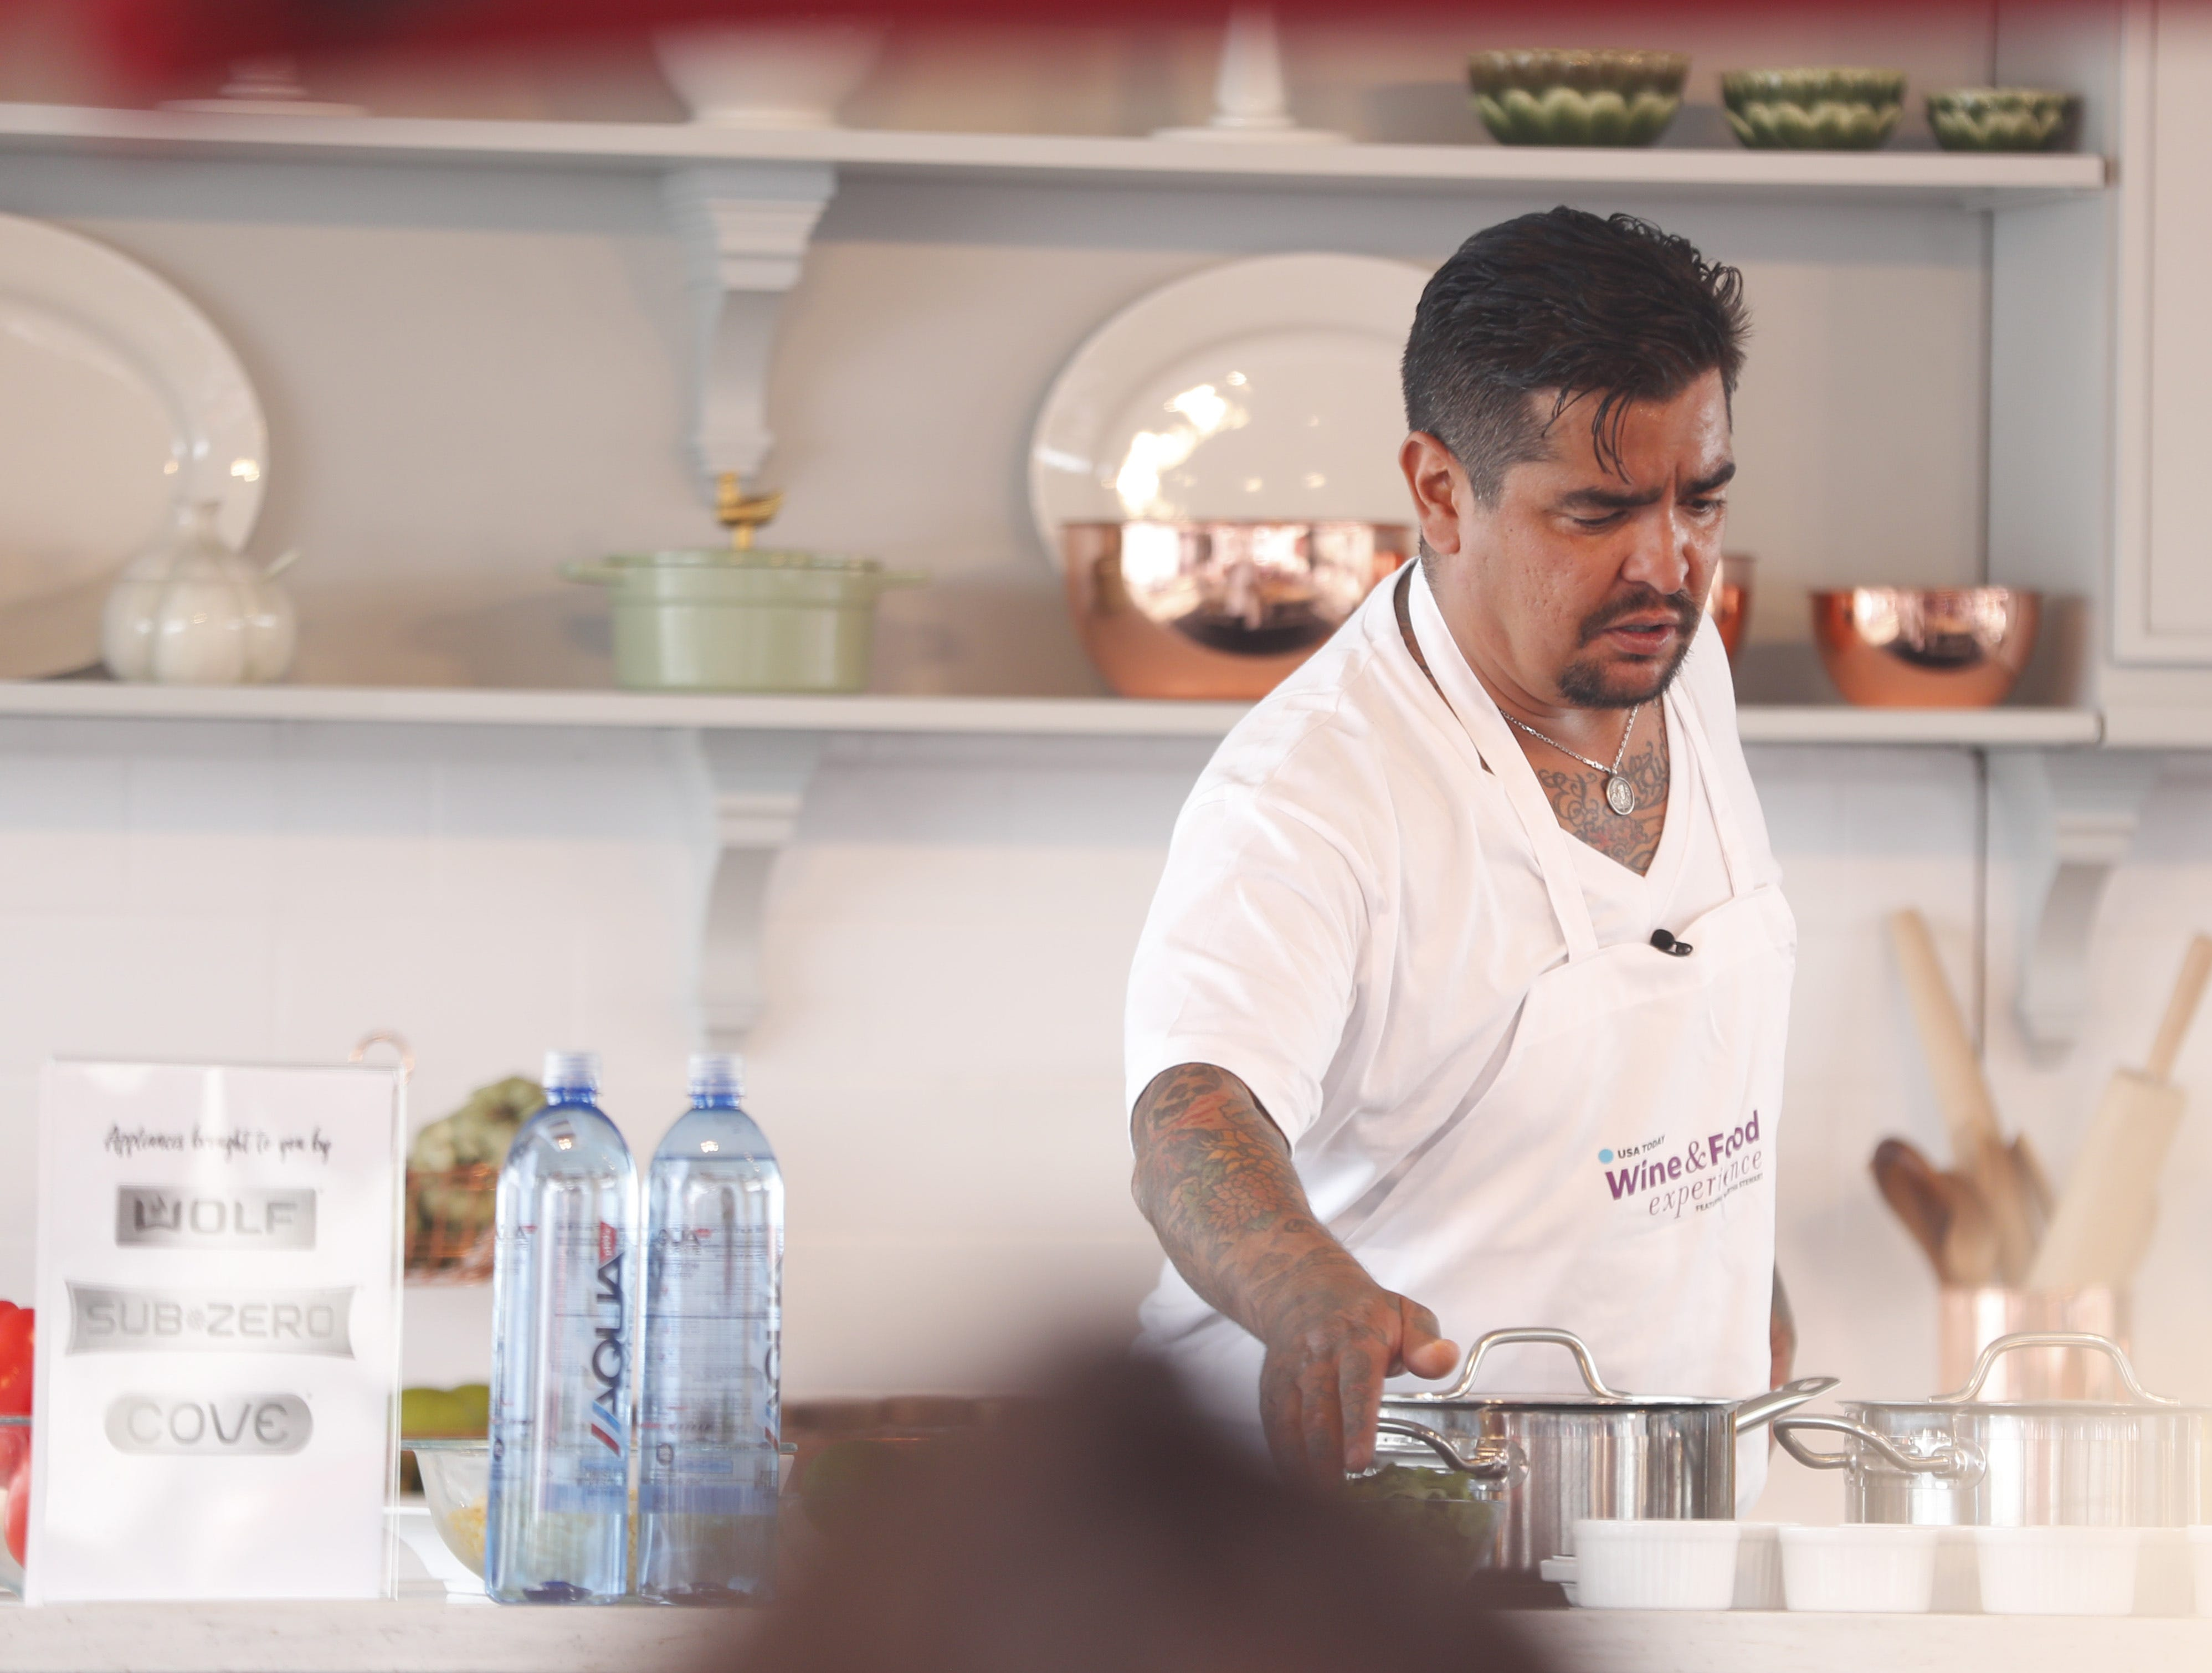 Chef Aarón Sánchez prepares a dish during the azcentral Wine & Food Experience at WestWorld of Scottsdale, Ariz. on Nov. 4, 2018.